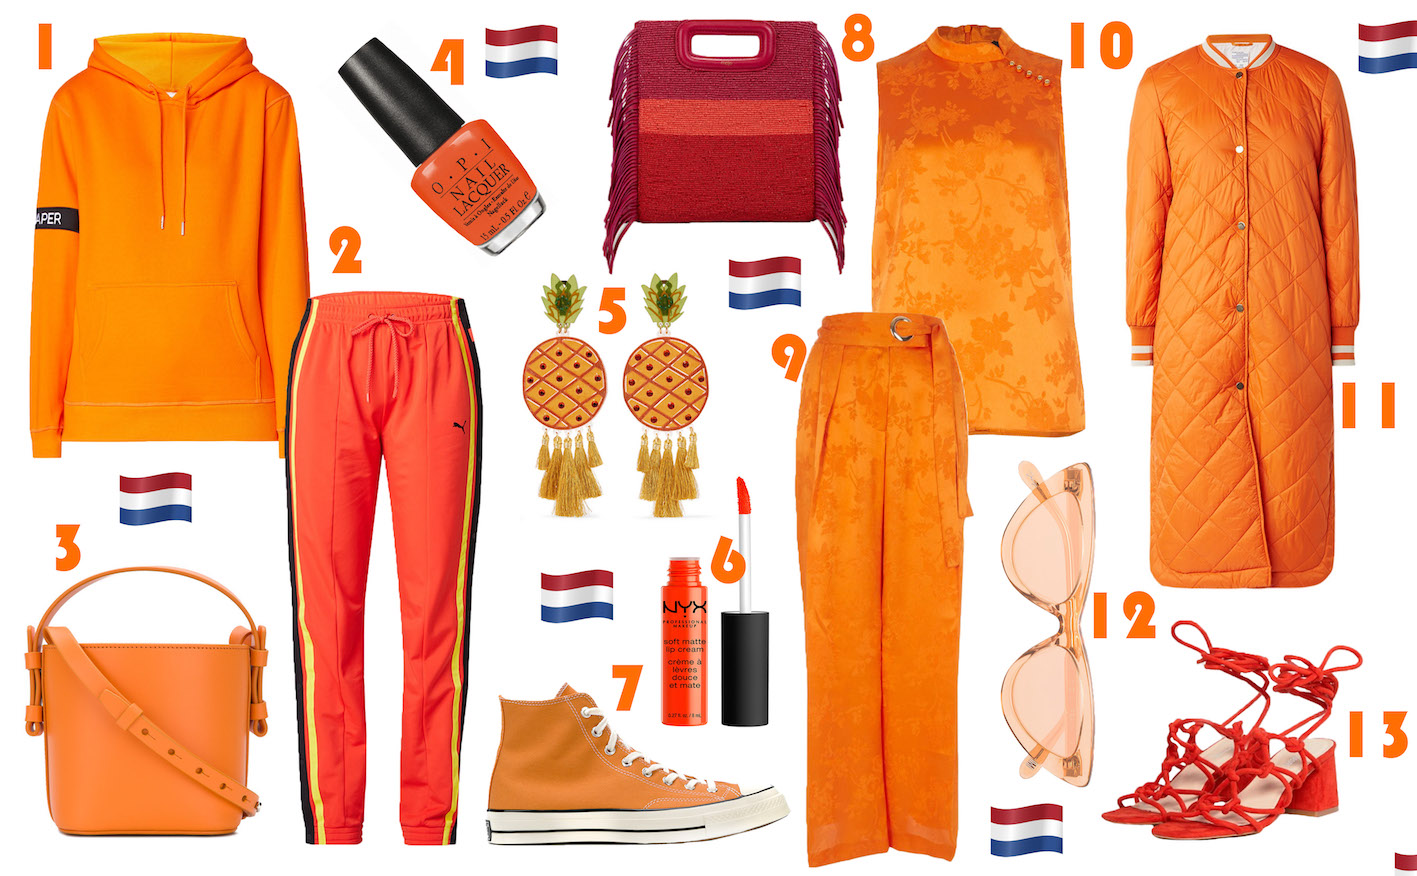 FLOORTJELOVES, kingsday , kingsday 2018, kingsday wishlist, shop, shopping, wishlist, koningsdag, oranje, orange